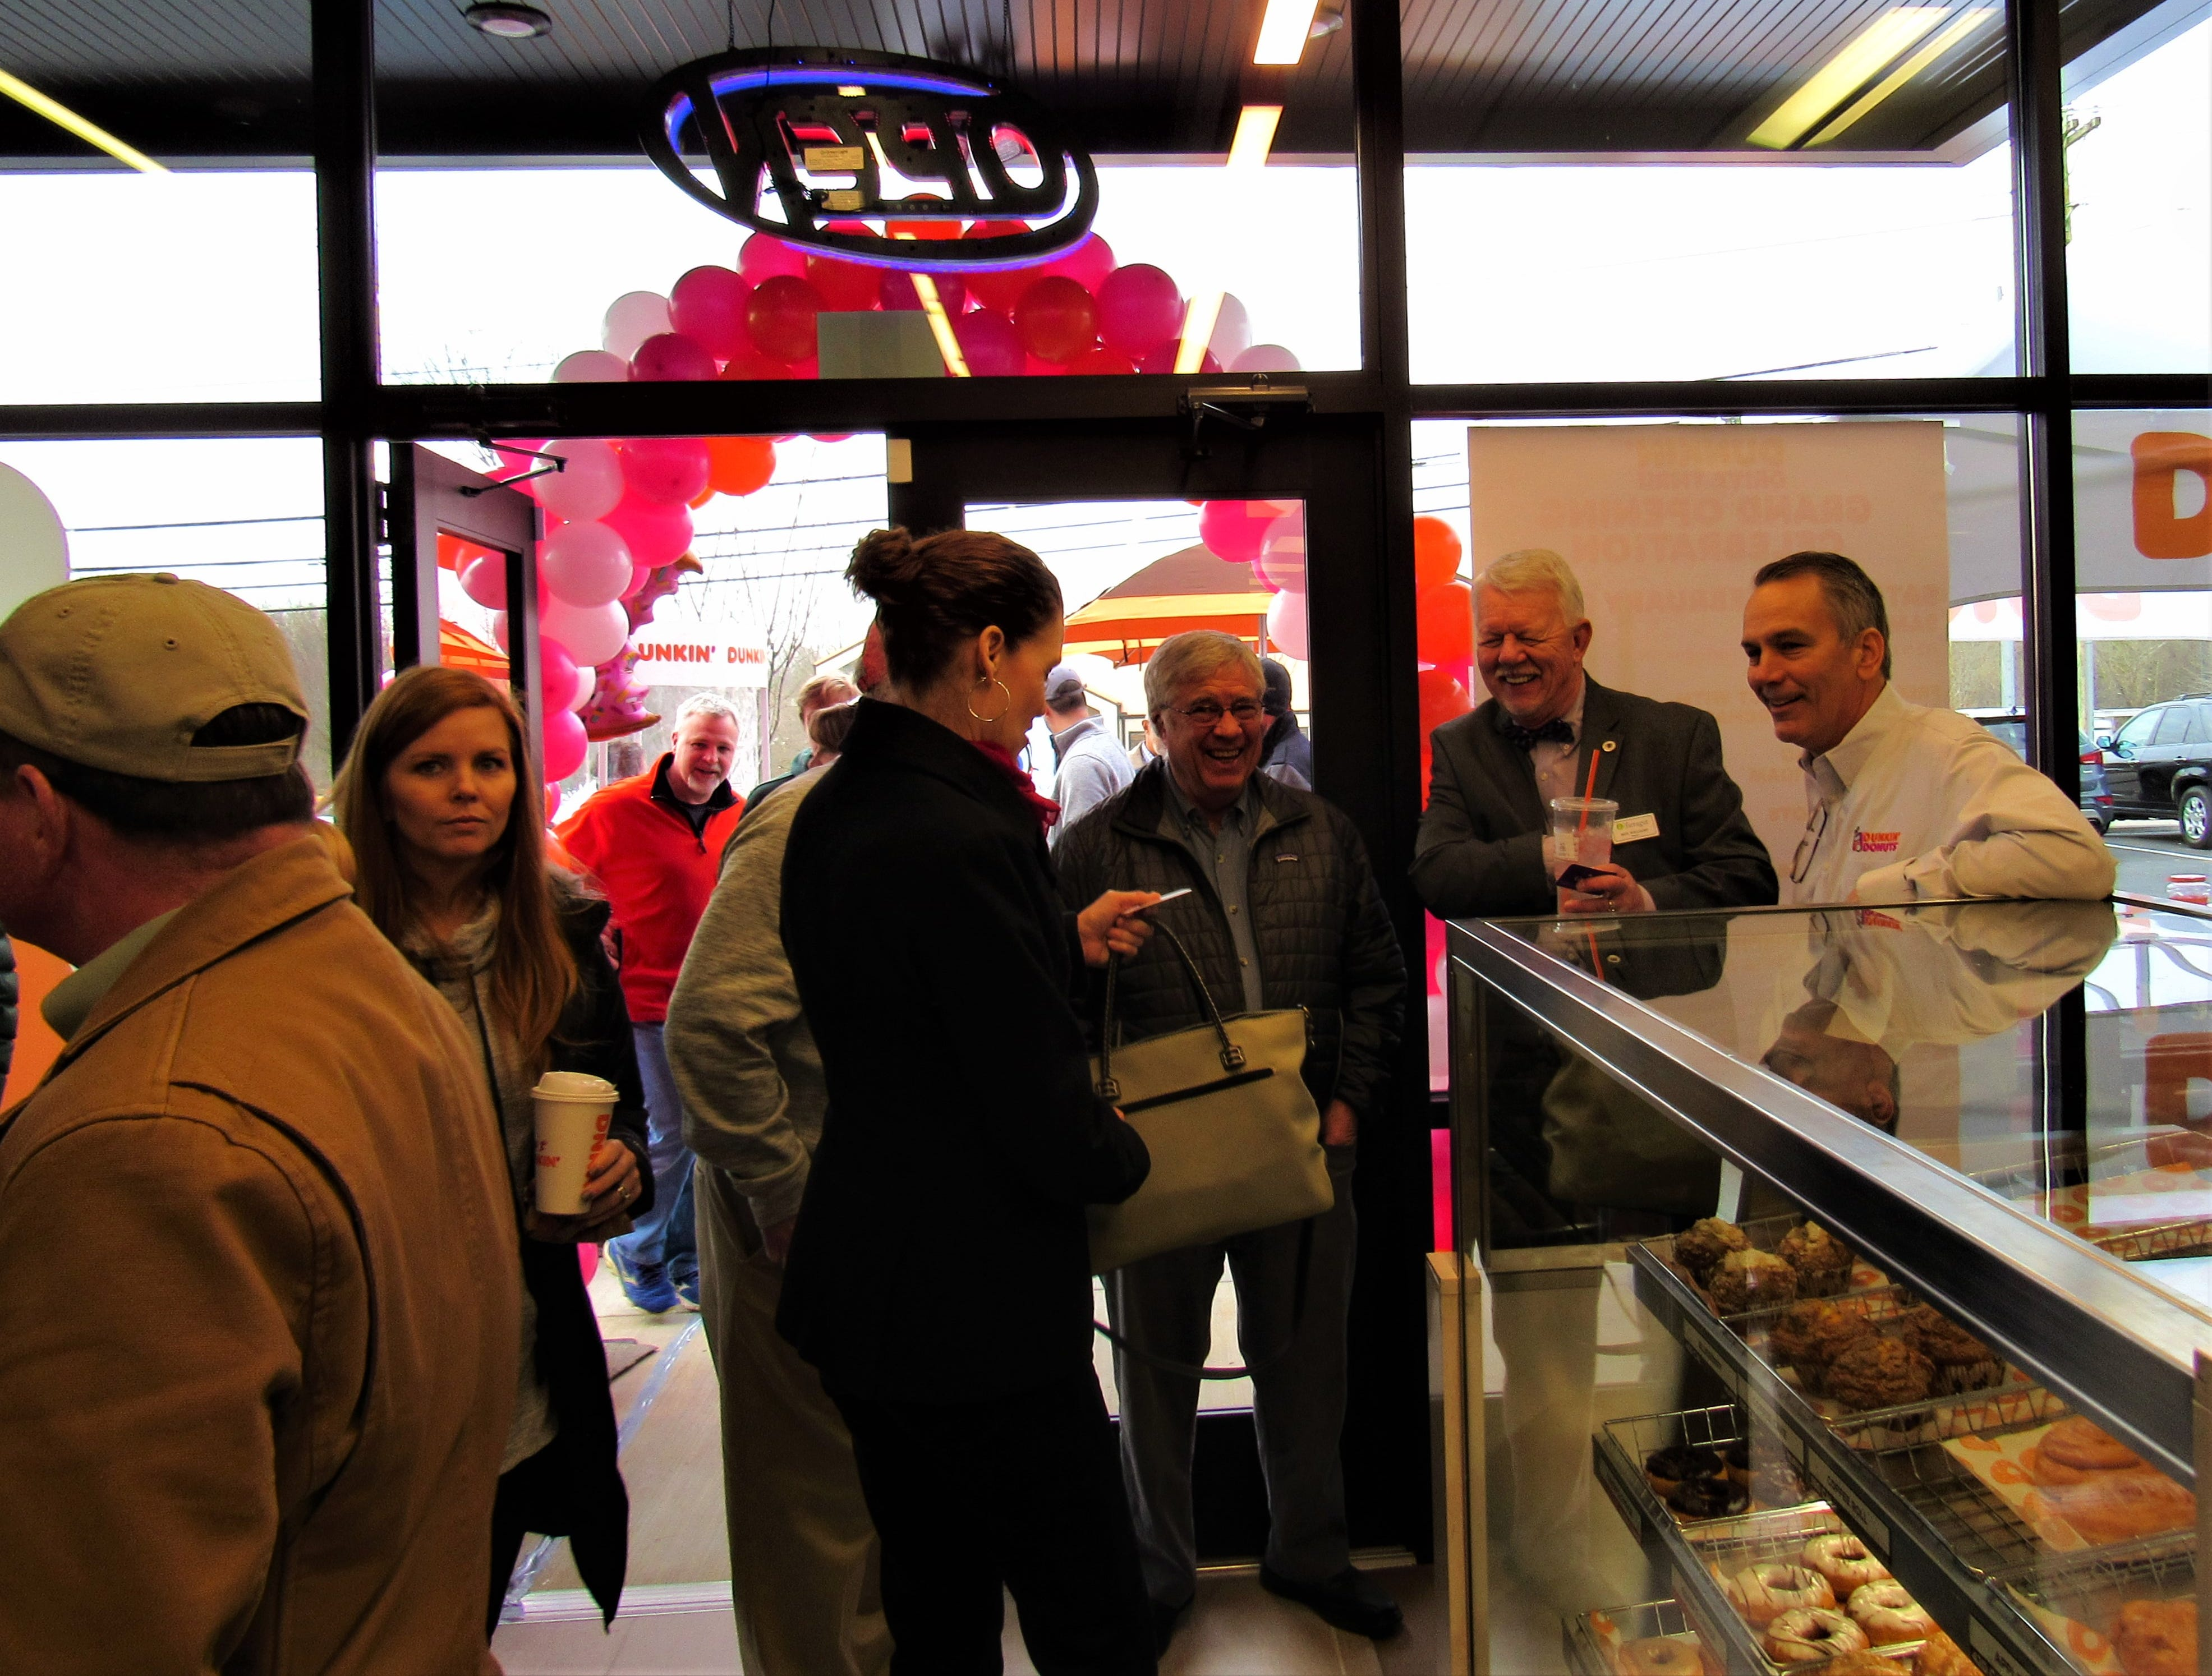 Customers poured into the new Dunkin' Donuts to help celebrate the grand opening and get a quick donut fix.